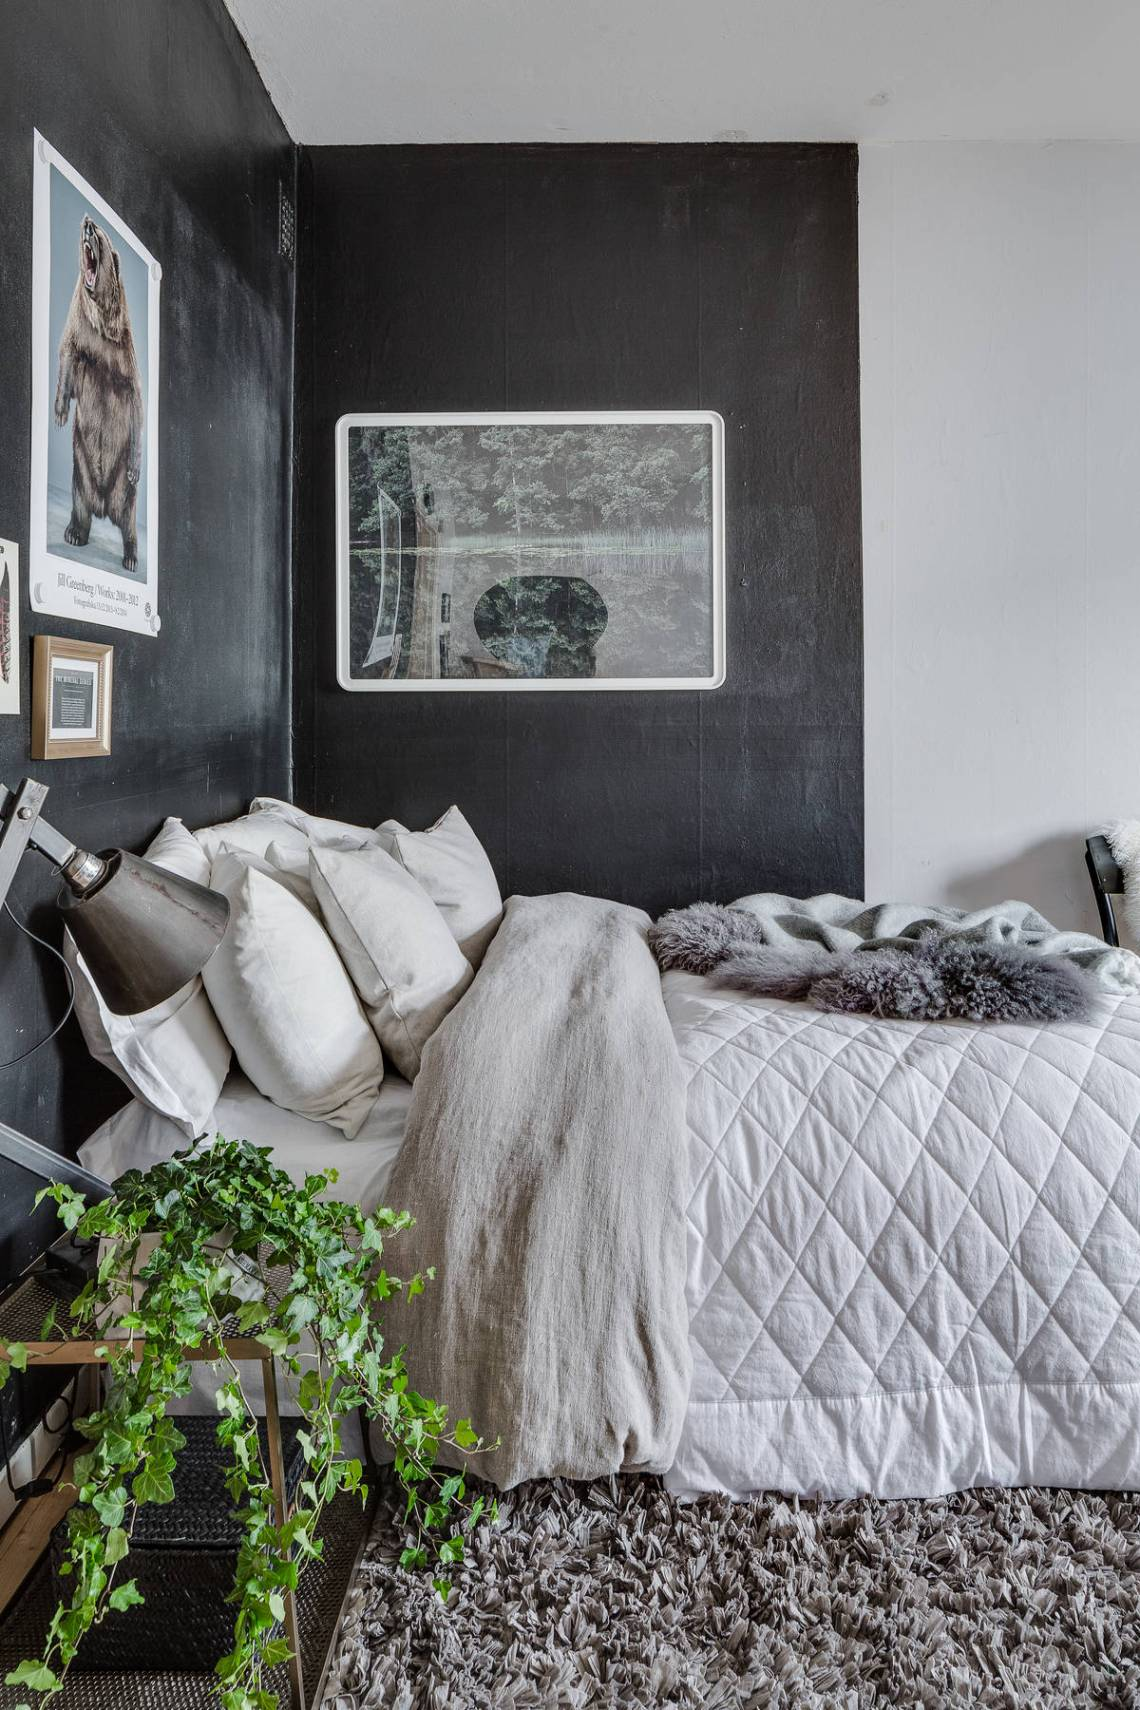 10 Creative Examples For Dividing Small Spaces: Dividing A Small Space With Paint Colors